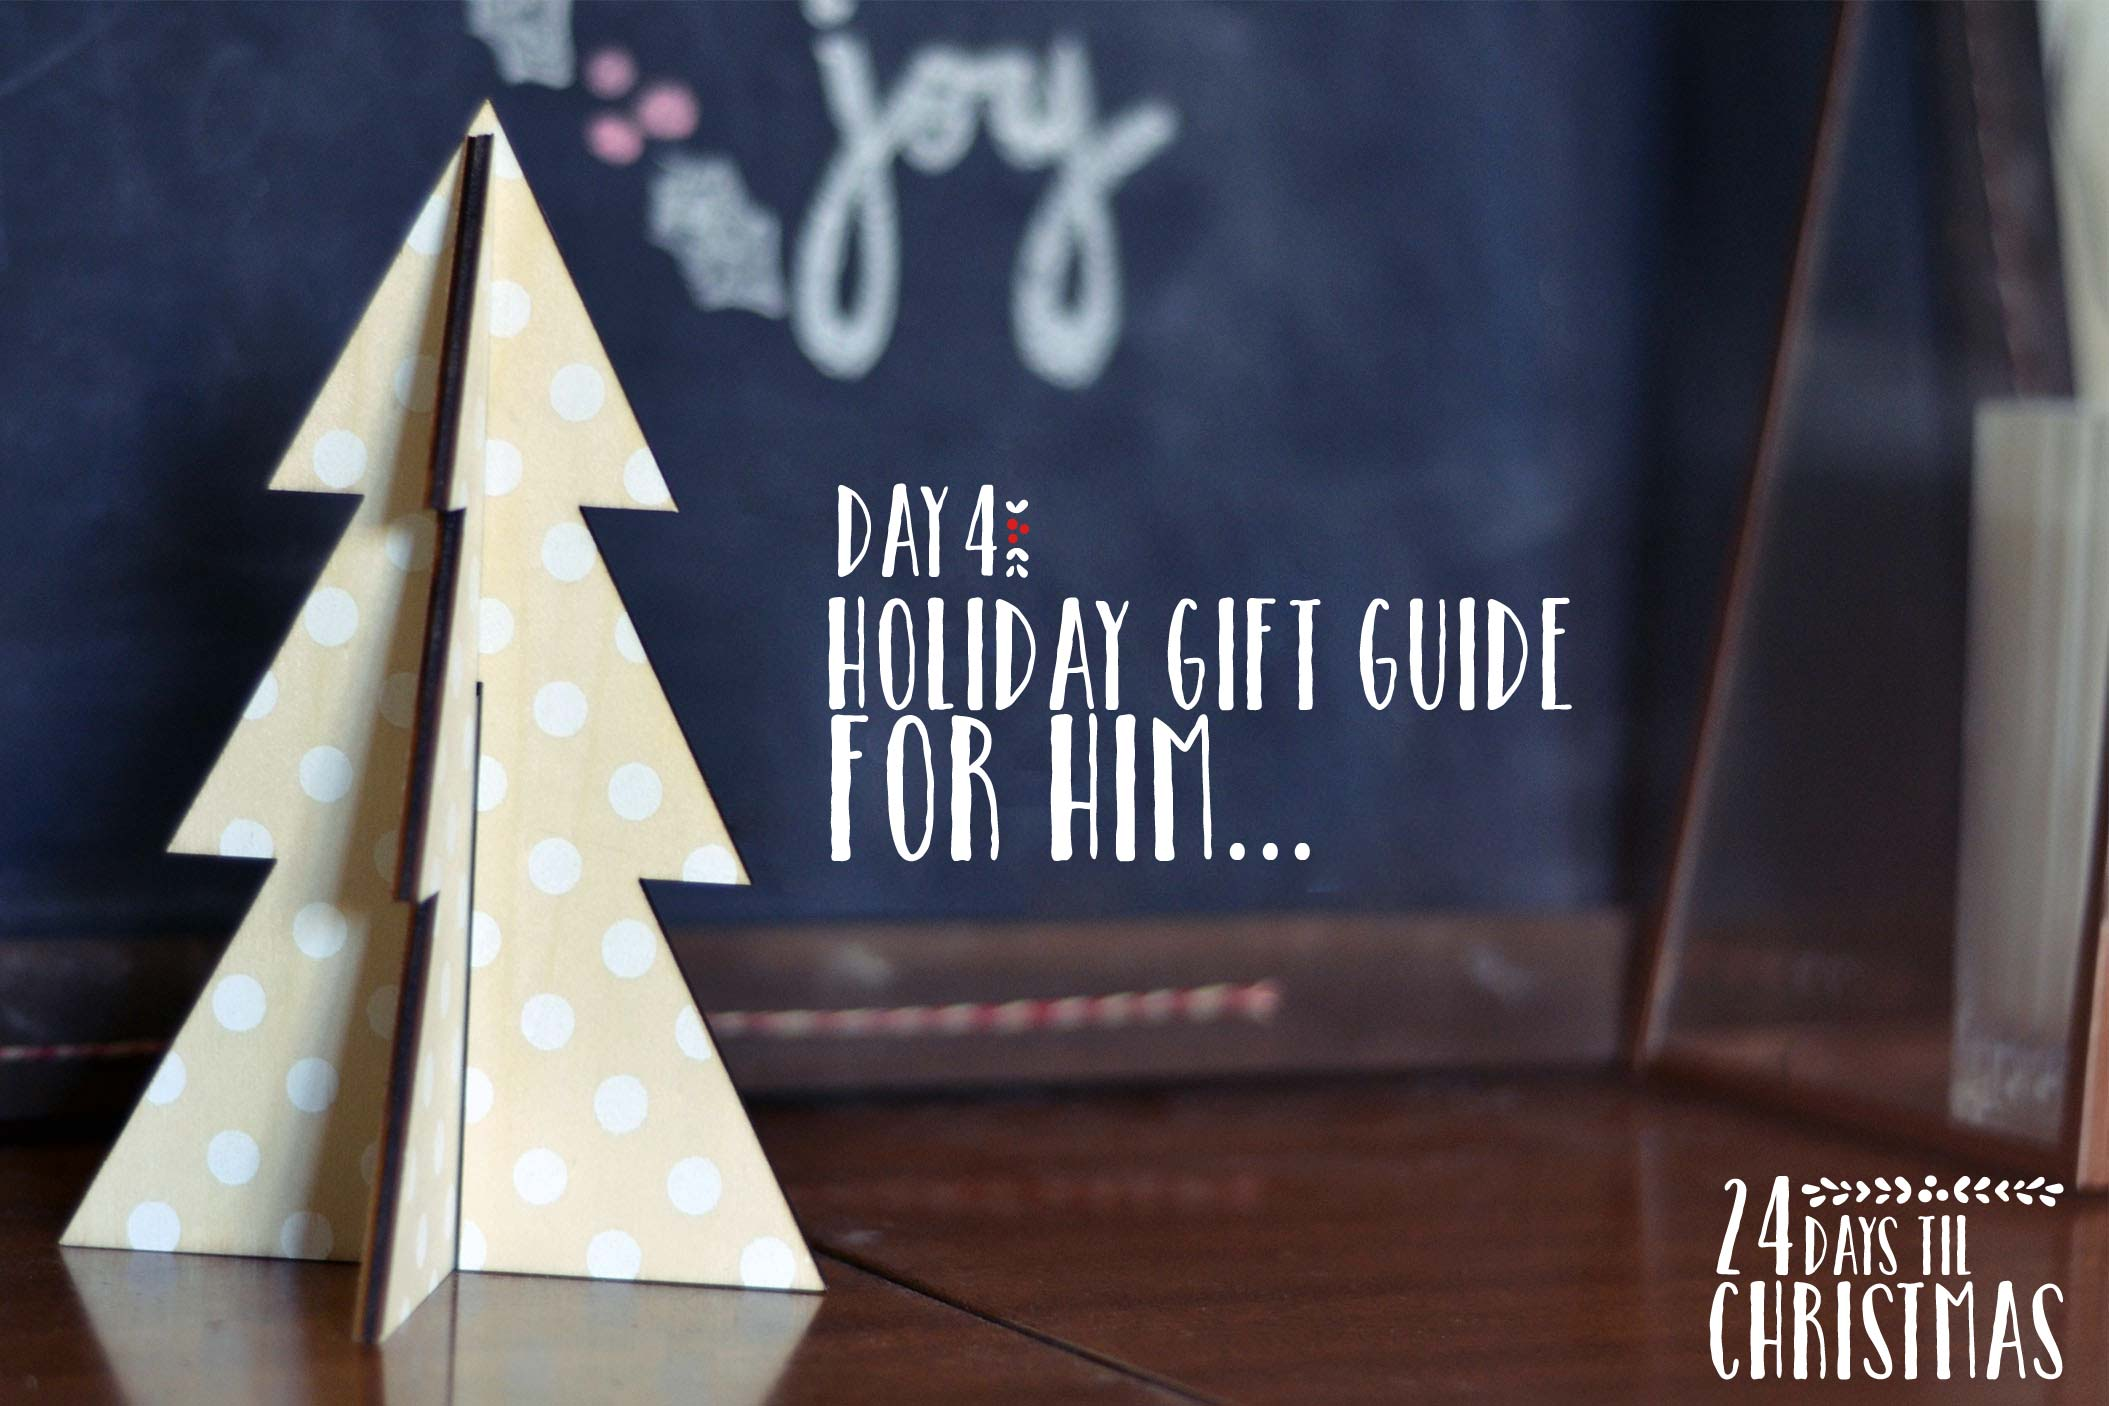 gift guide 4 him cover-01